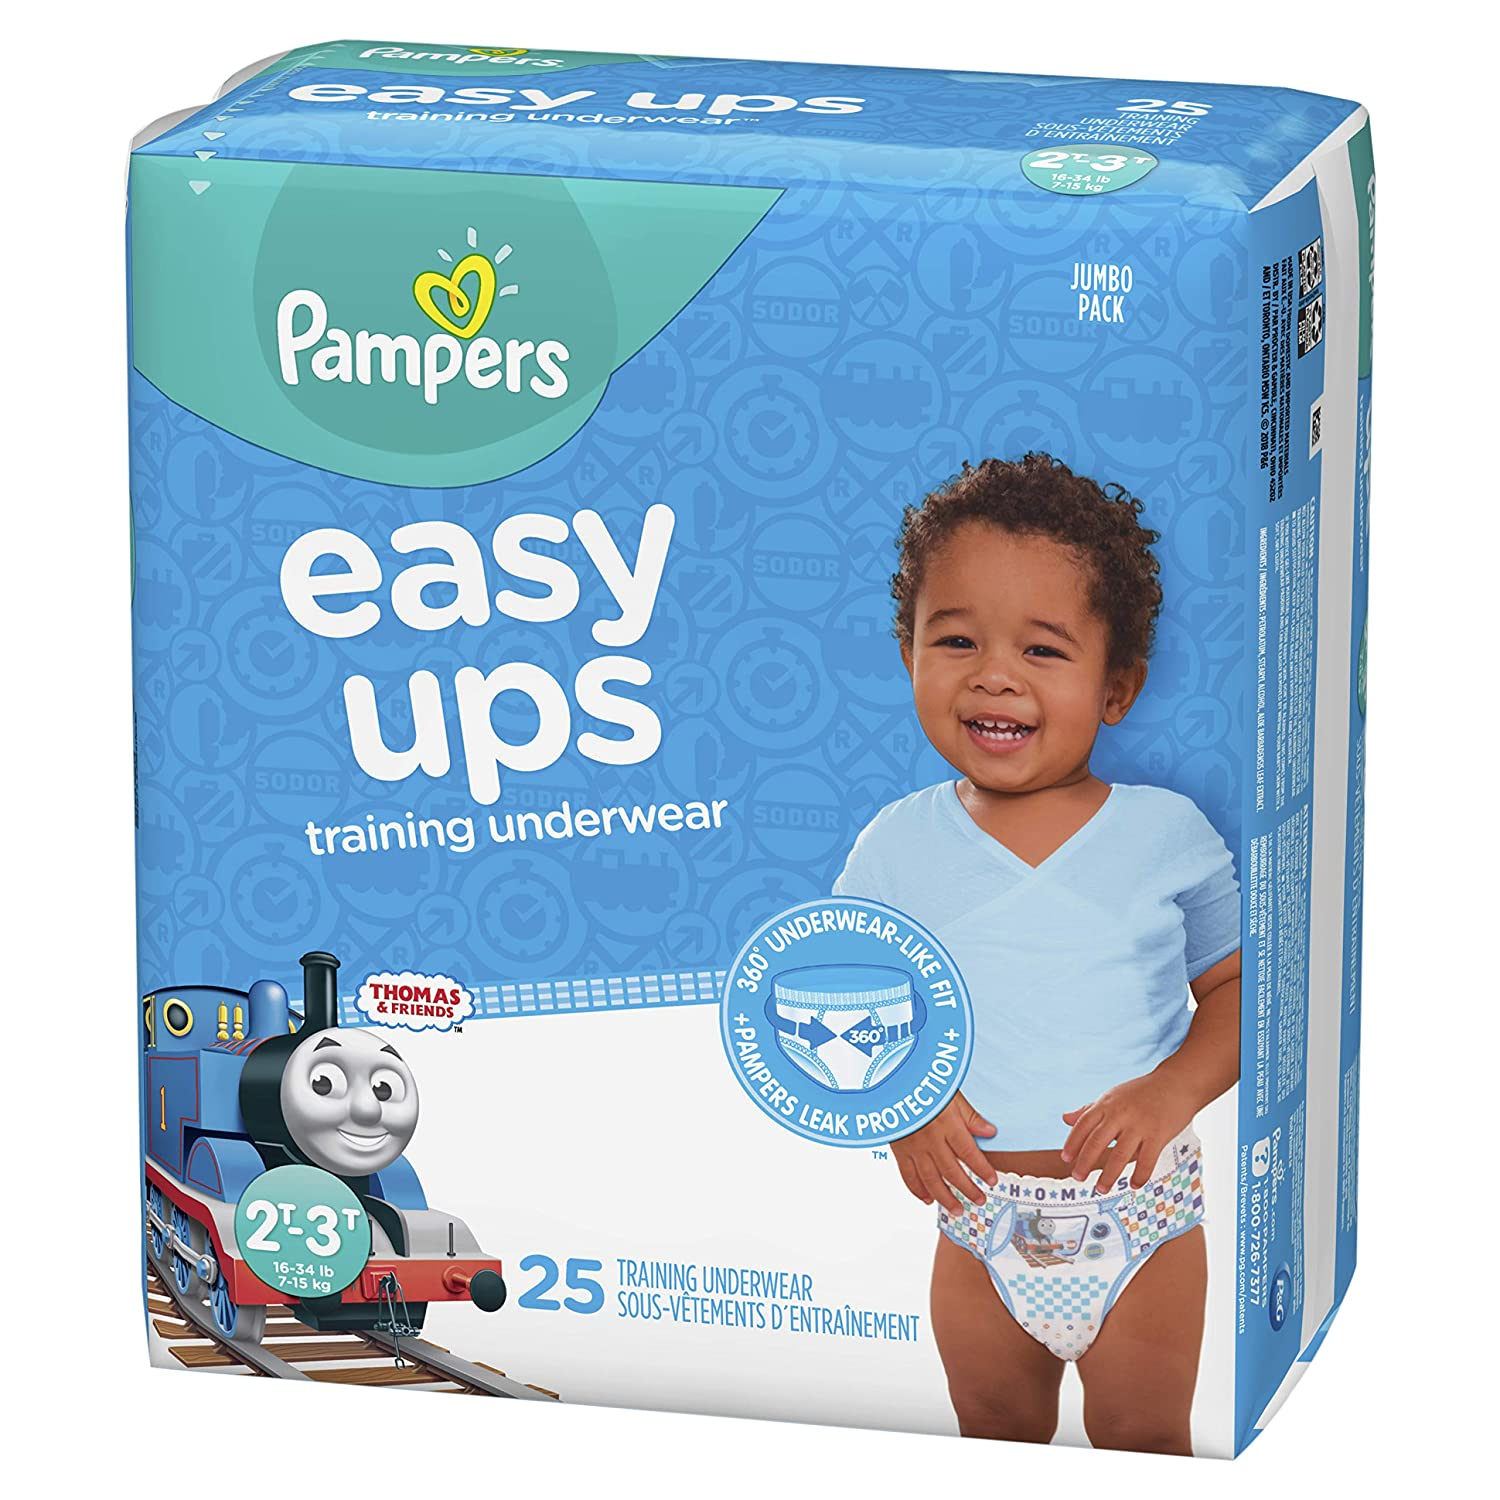 23efe4486 Pampers Easy Ups Diapers Size 4 (2T-3T), Pull On Disposable Training Diaper  for Boys, JUMBO PACK, 25 Count: Amazon.ca: Health & Personal Care